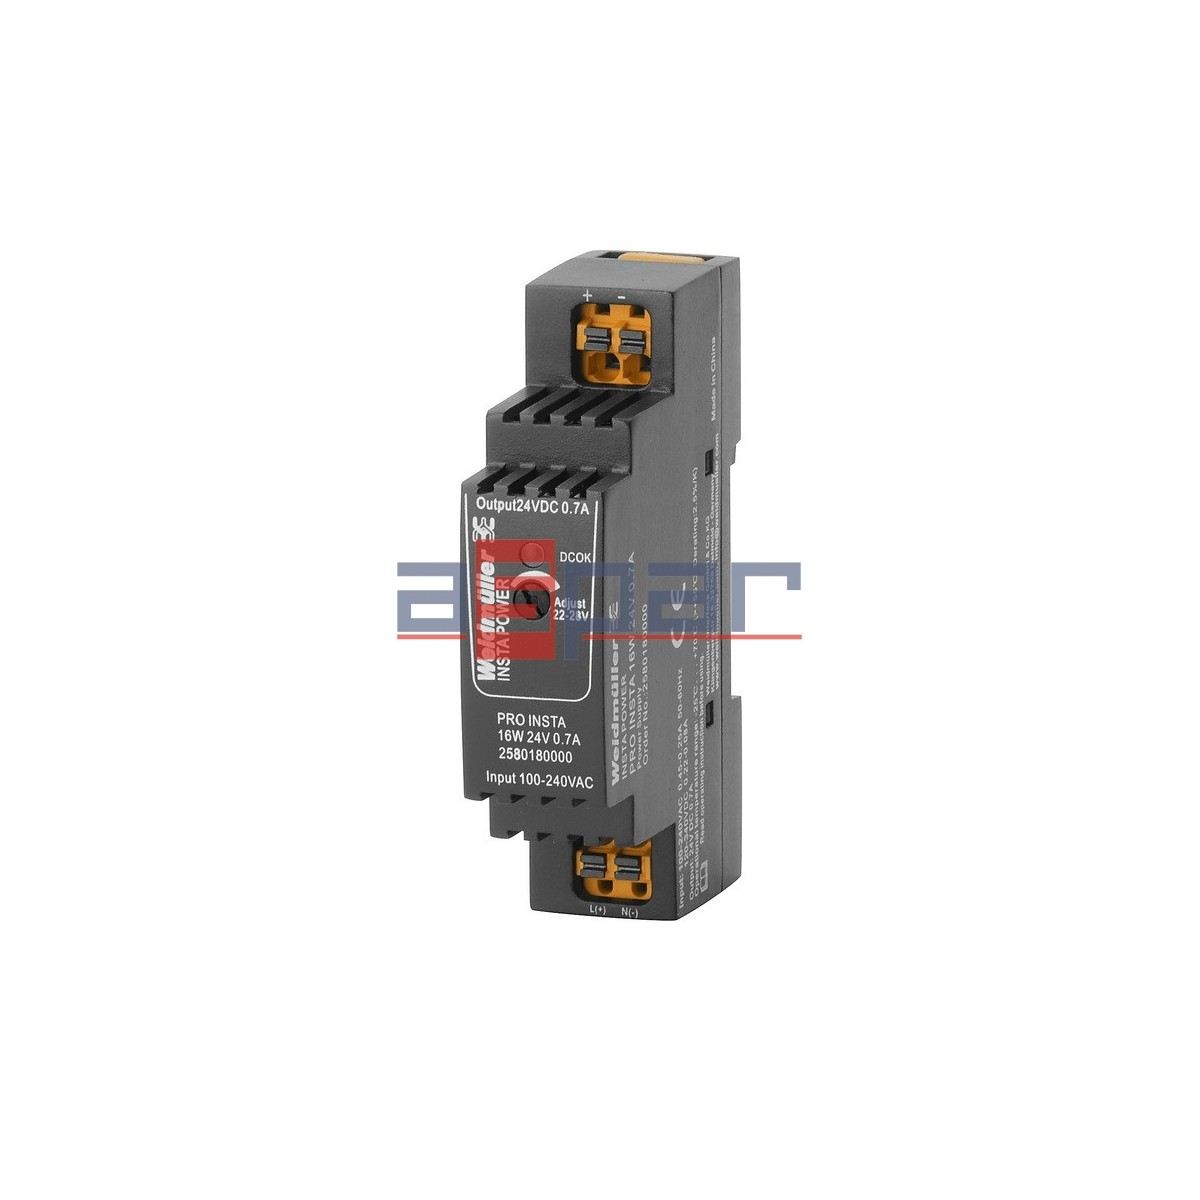 switch-mode power supply unit, 24 V, PRO INSTA 16W 24V 0.7A